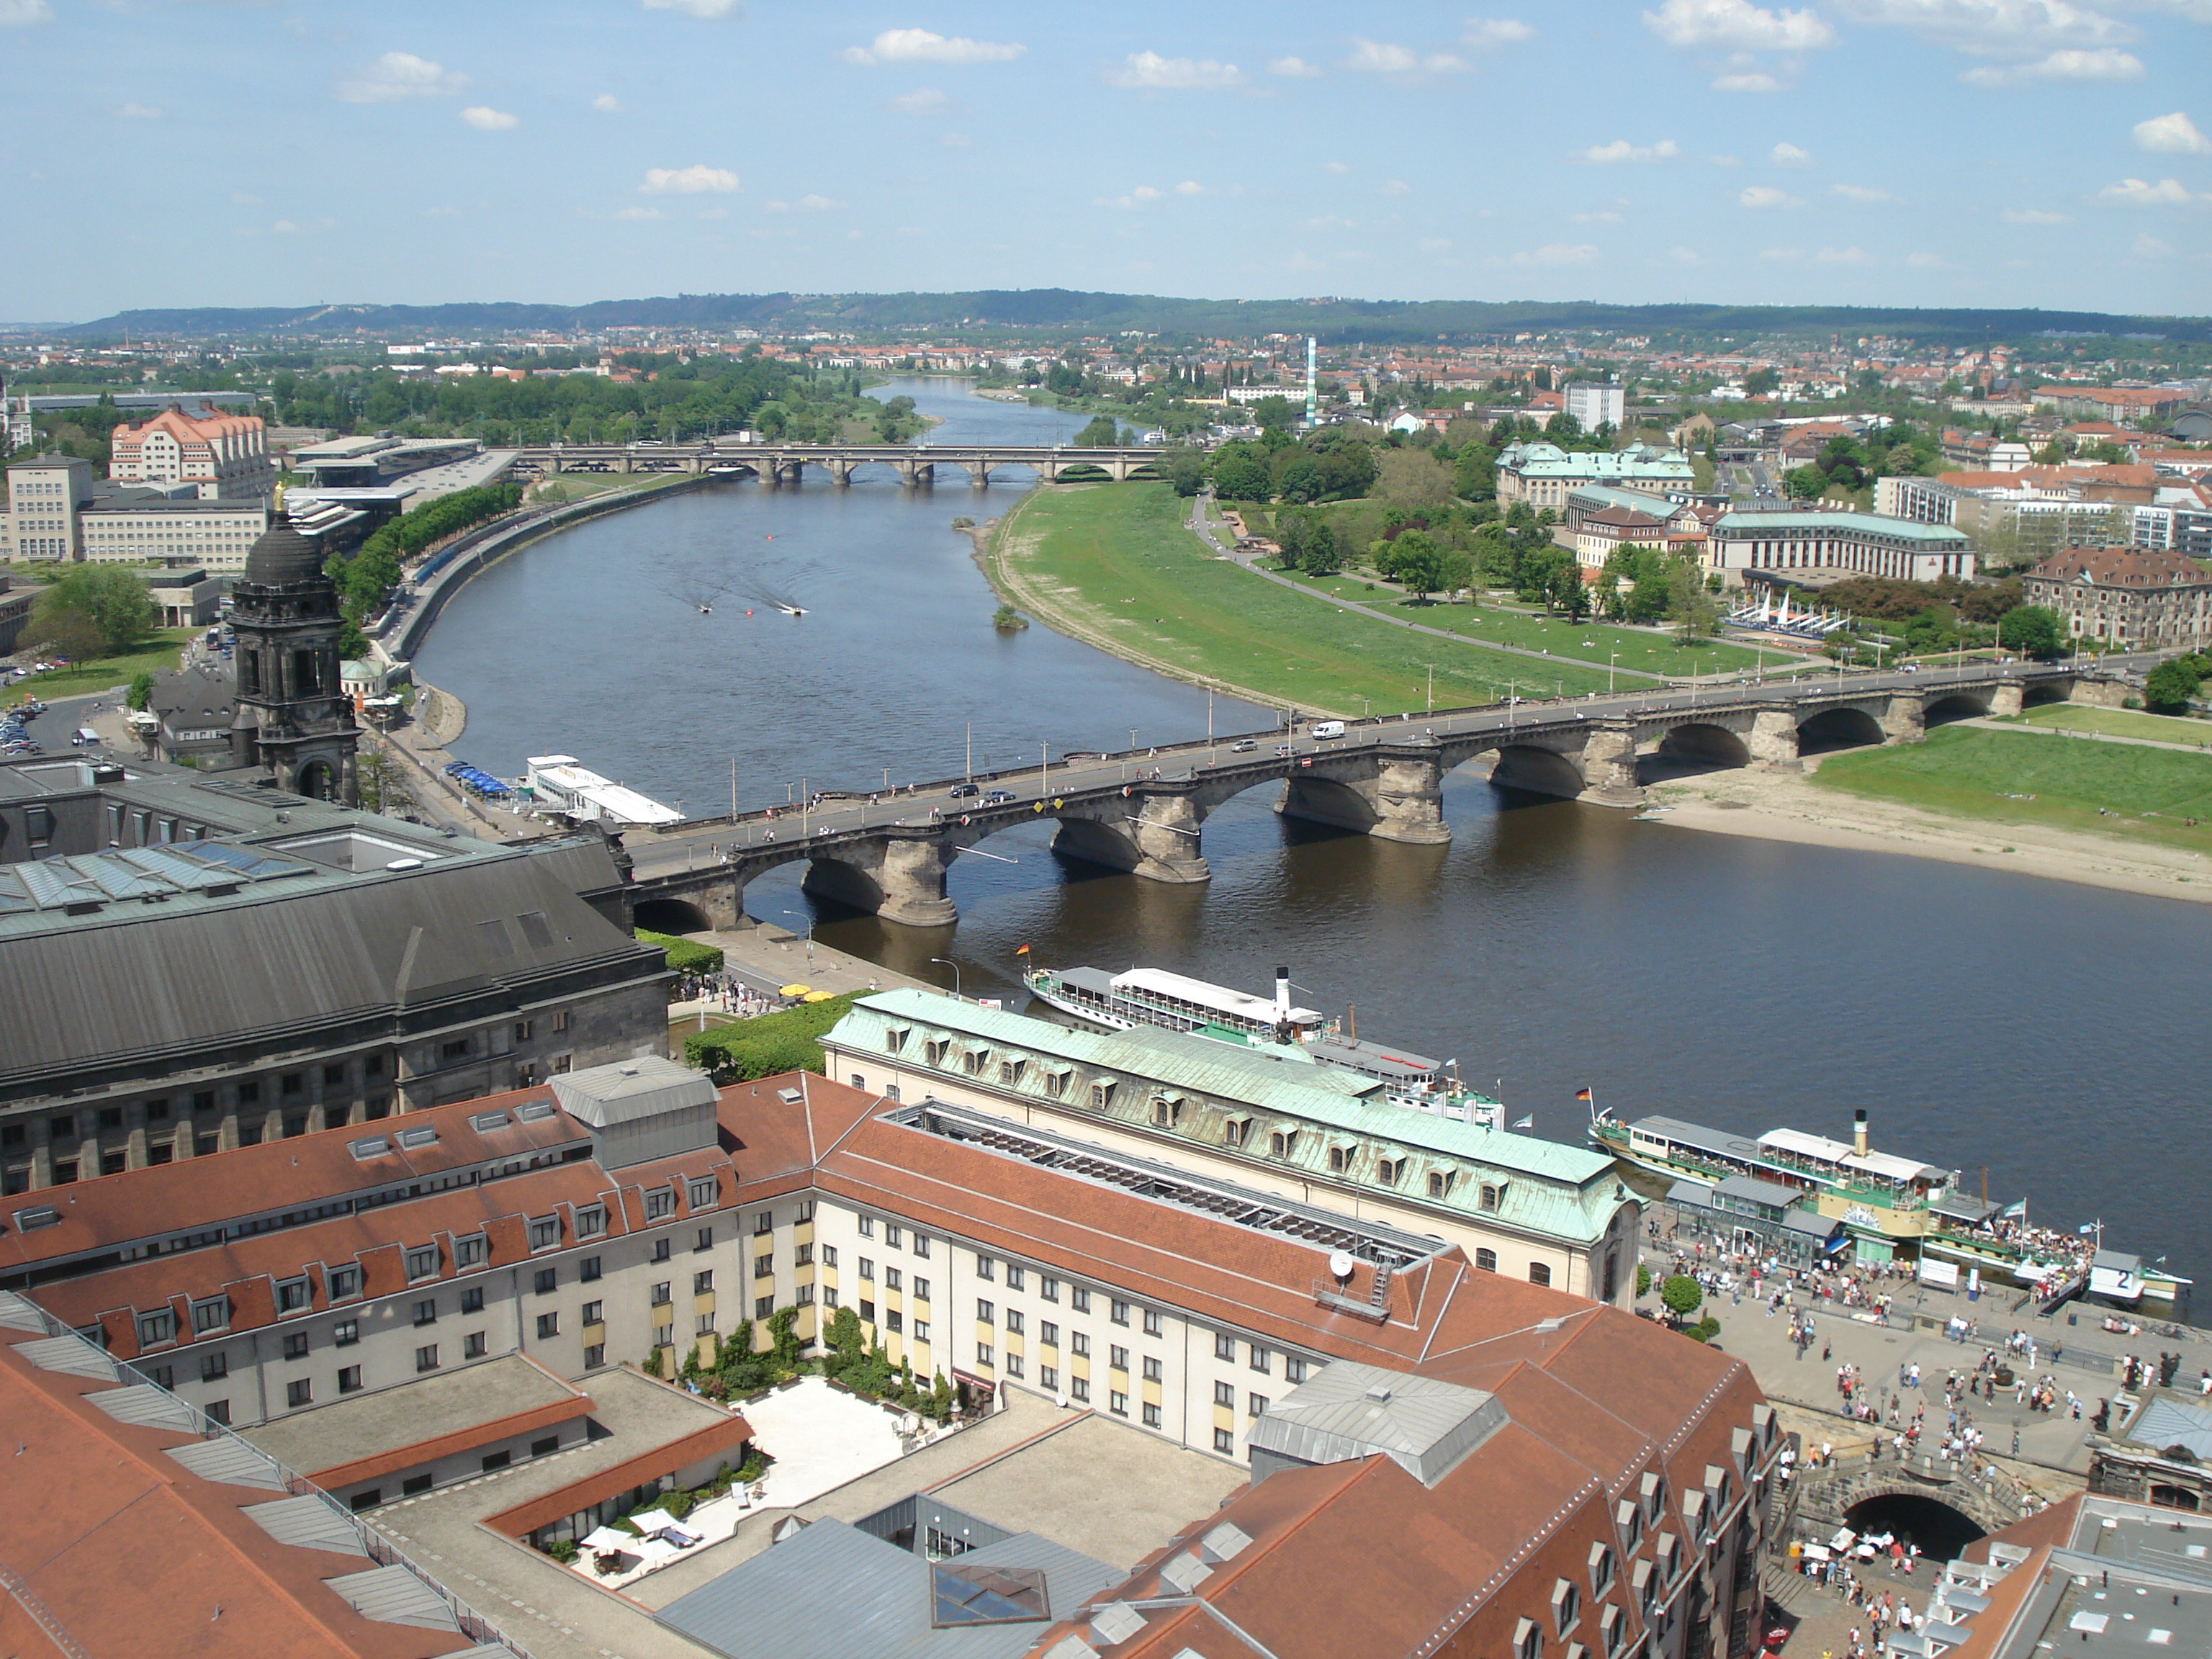 View from the Frauenkirche onto the Augustusbrücke over the Elbe in Dresden